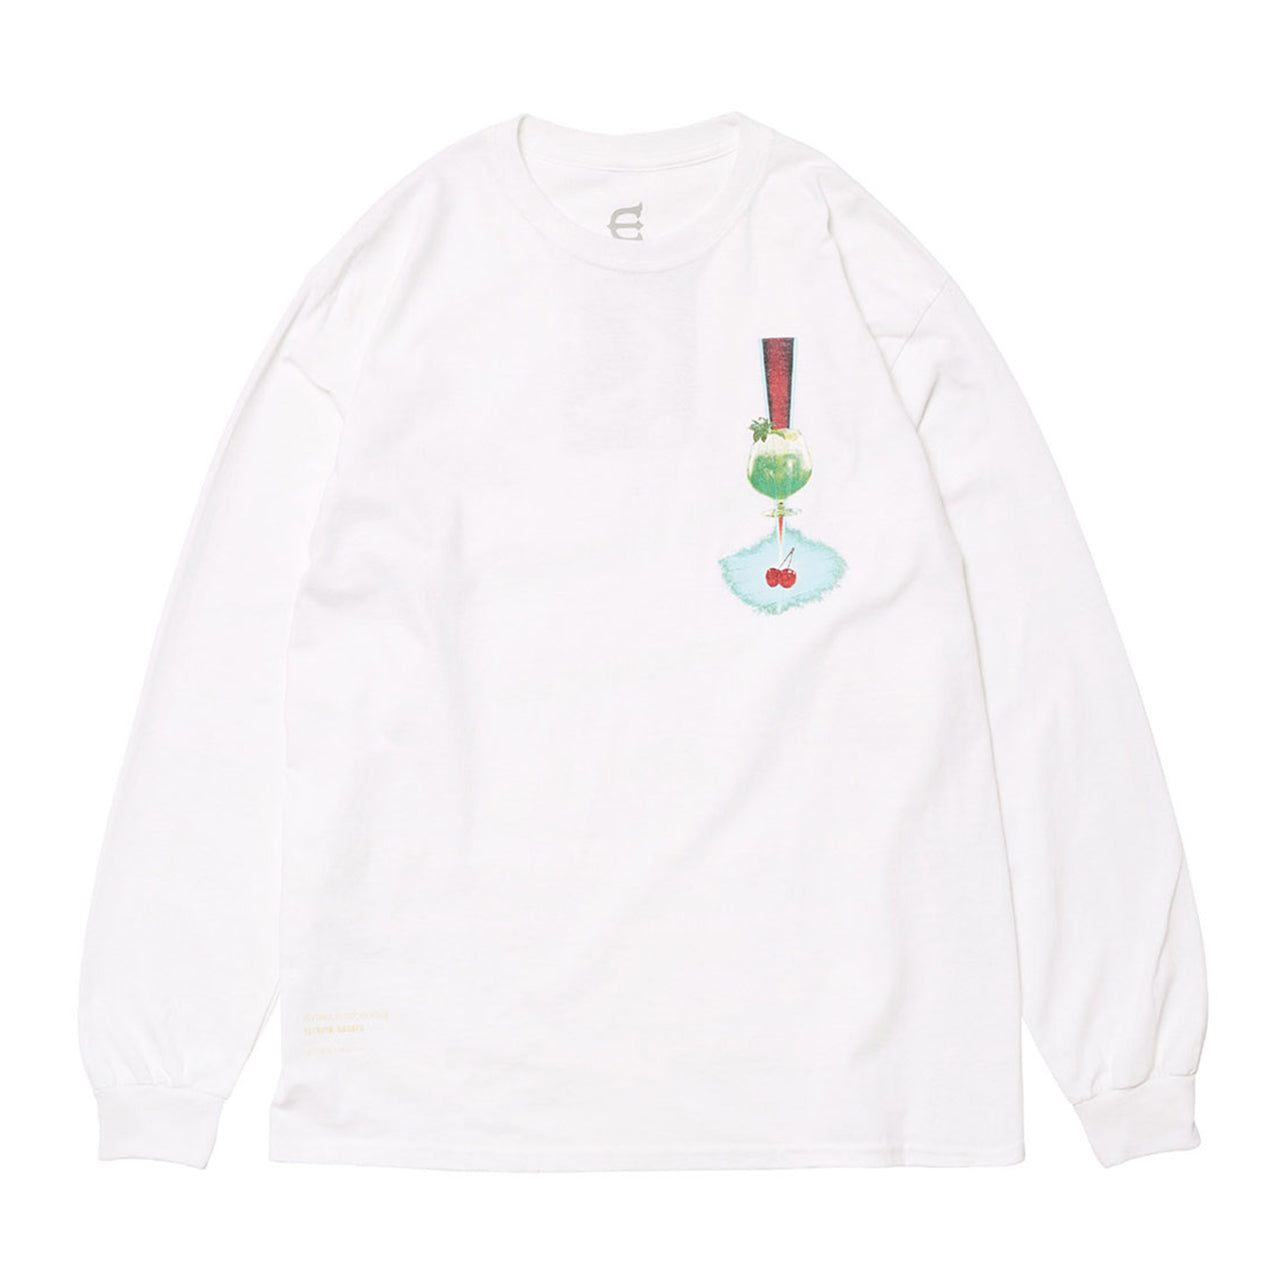 Evisen - Cherry Pop Longsleeve - White